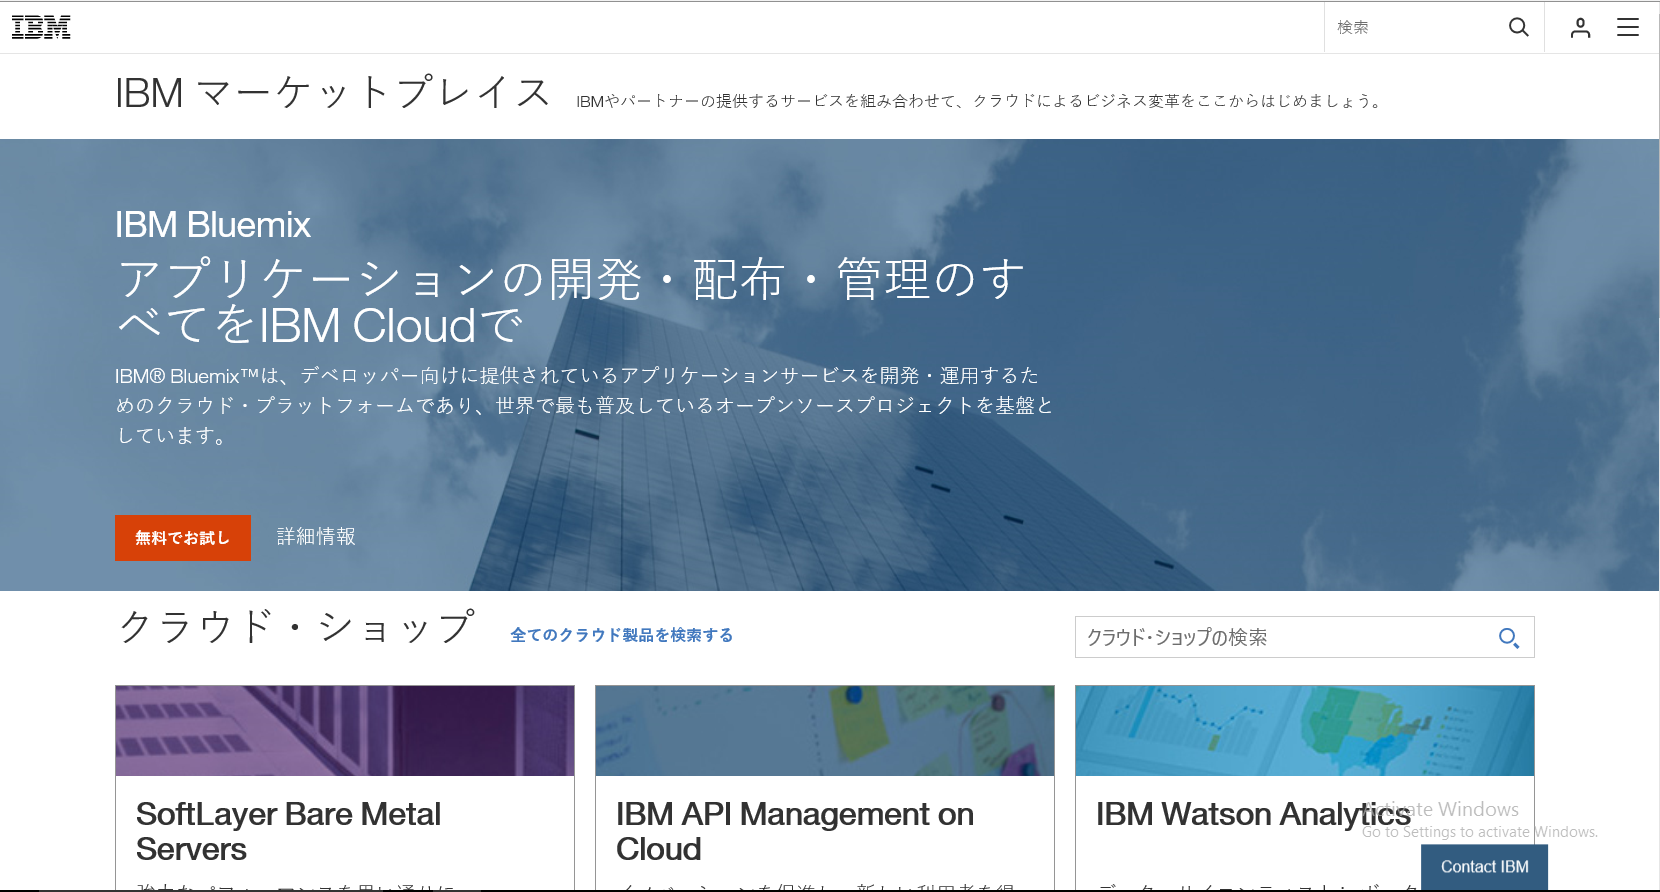 IO Delivers IBM Cloud Marketplace in 7 Countries